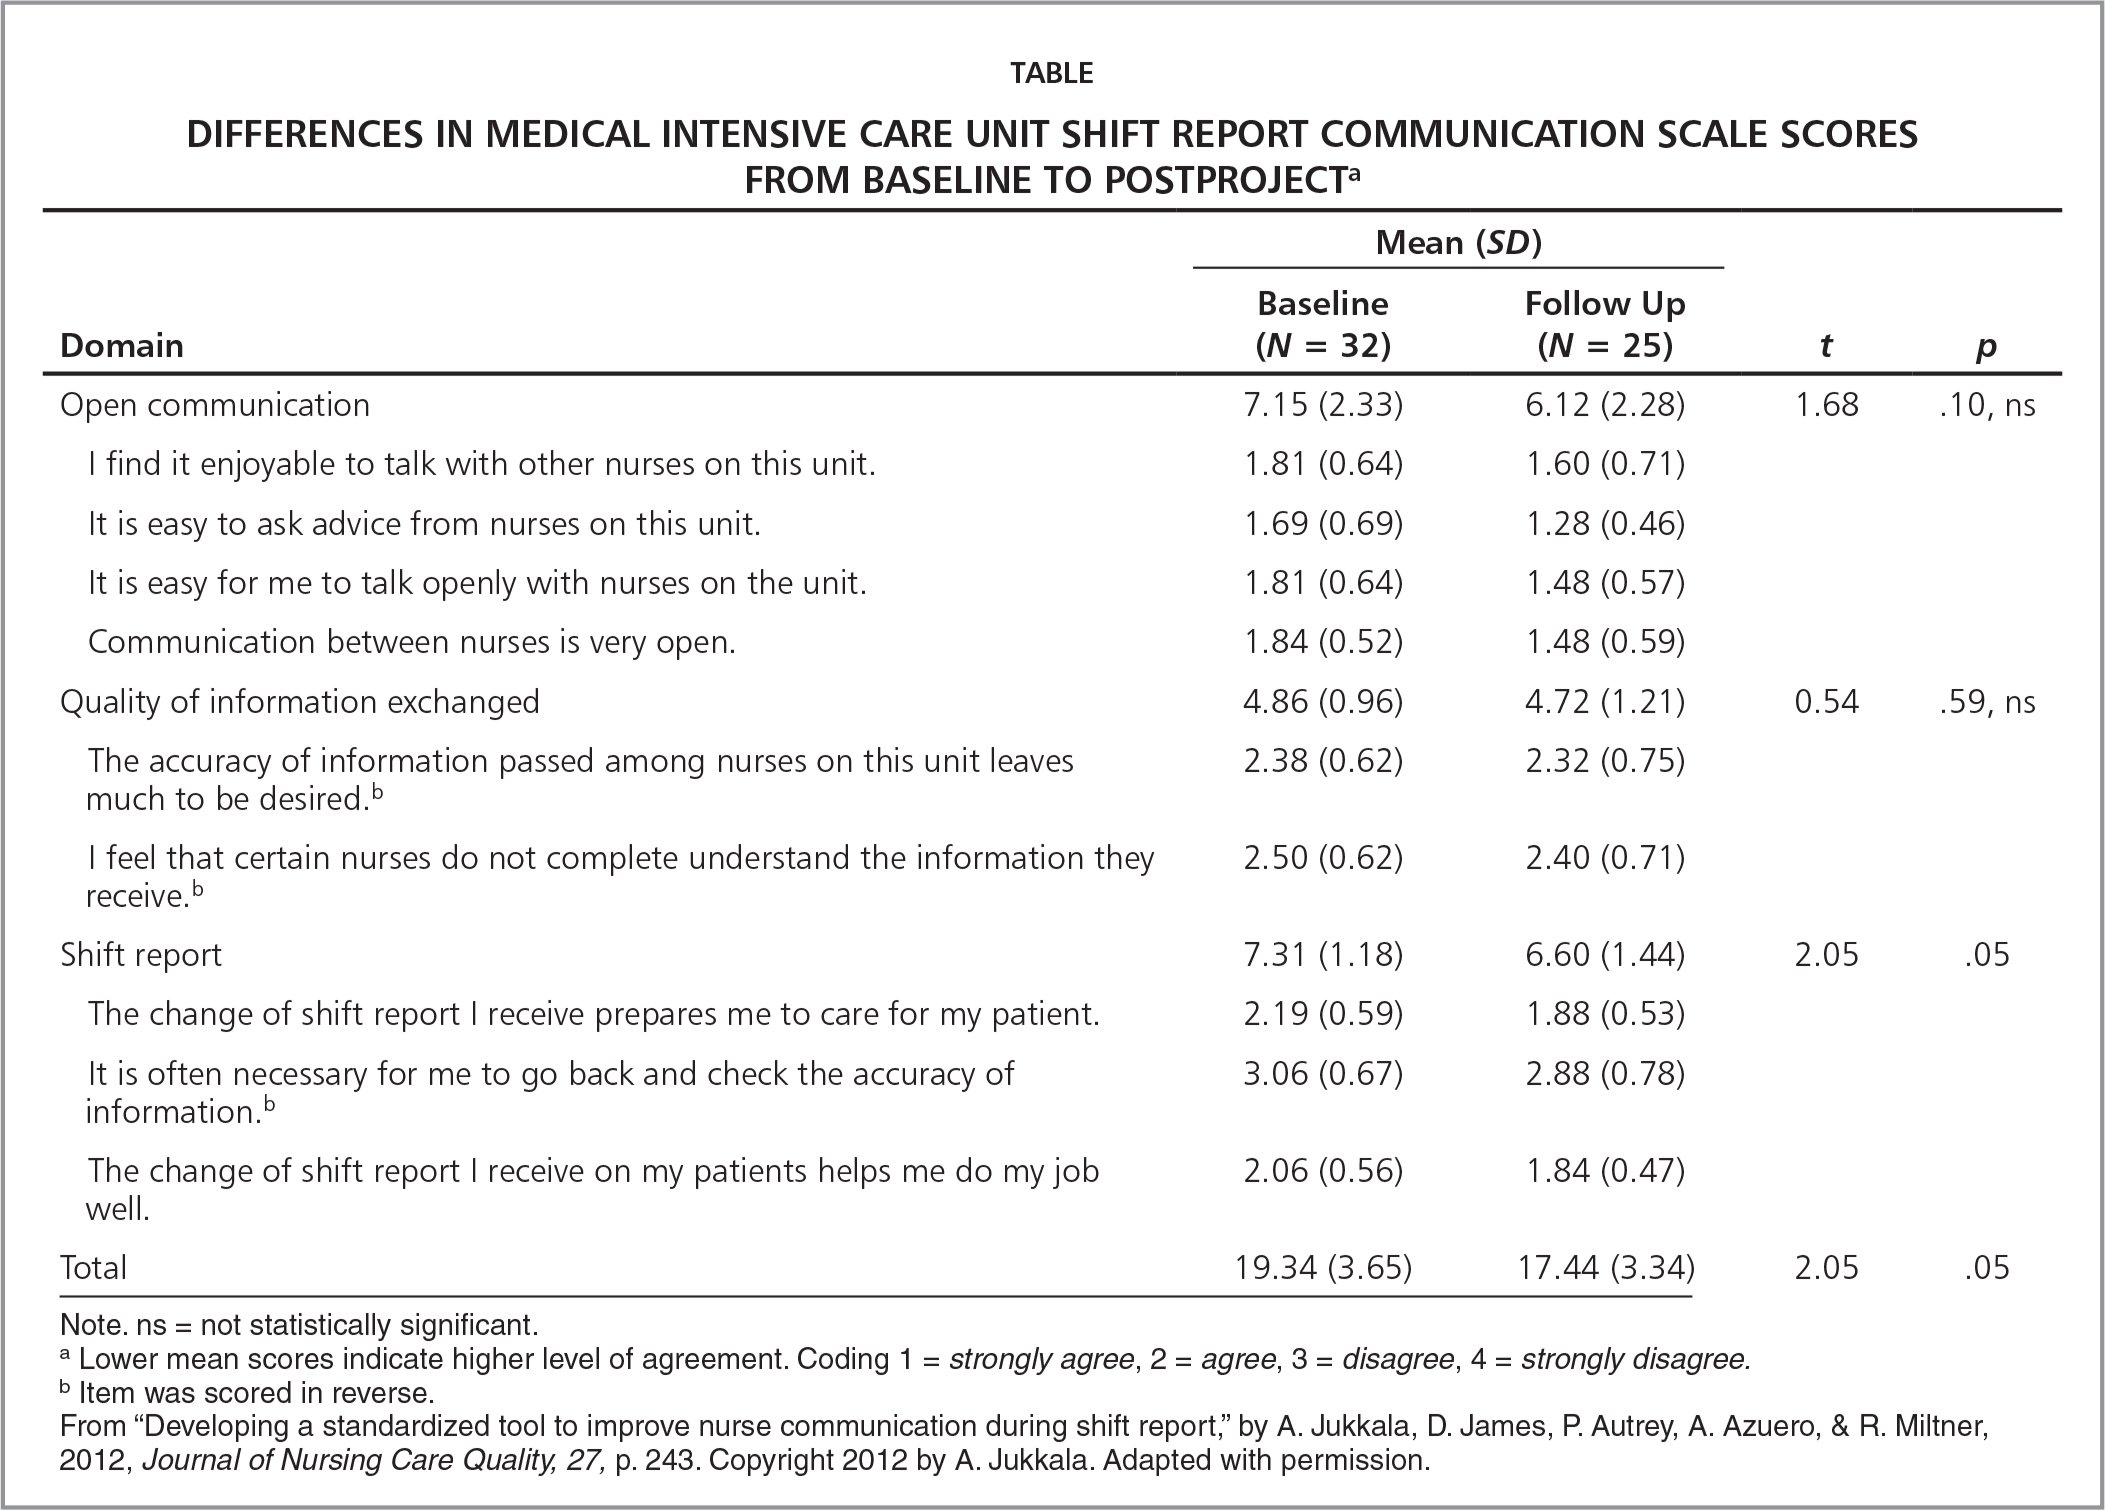 Differences in Medical Intensive Care Unit Shift Report Communication Scale Scores From Baseline to Postprojecta